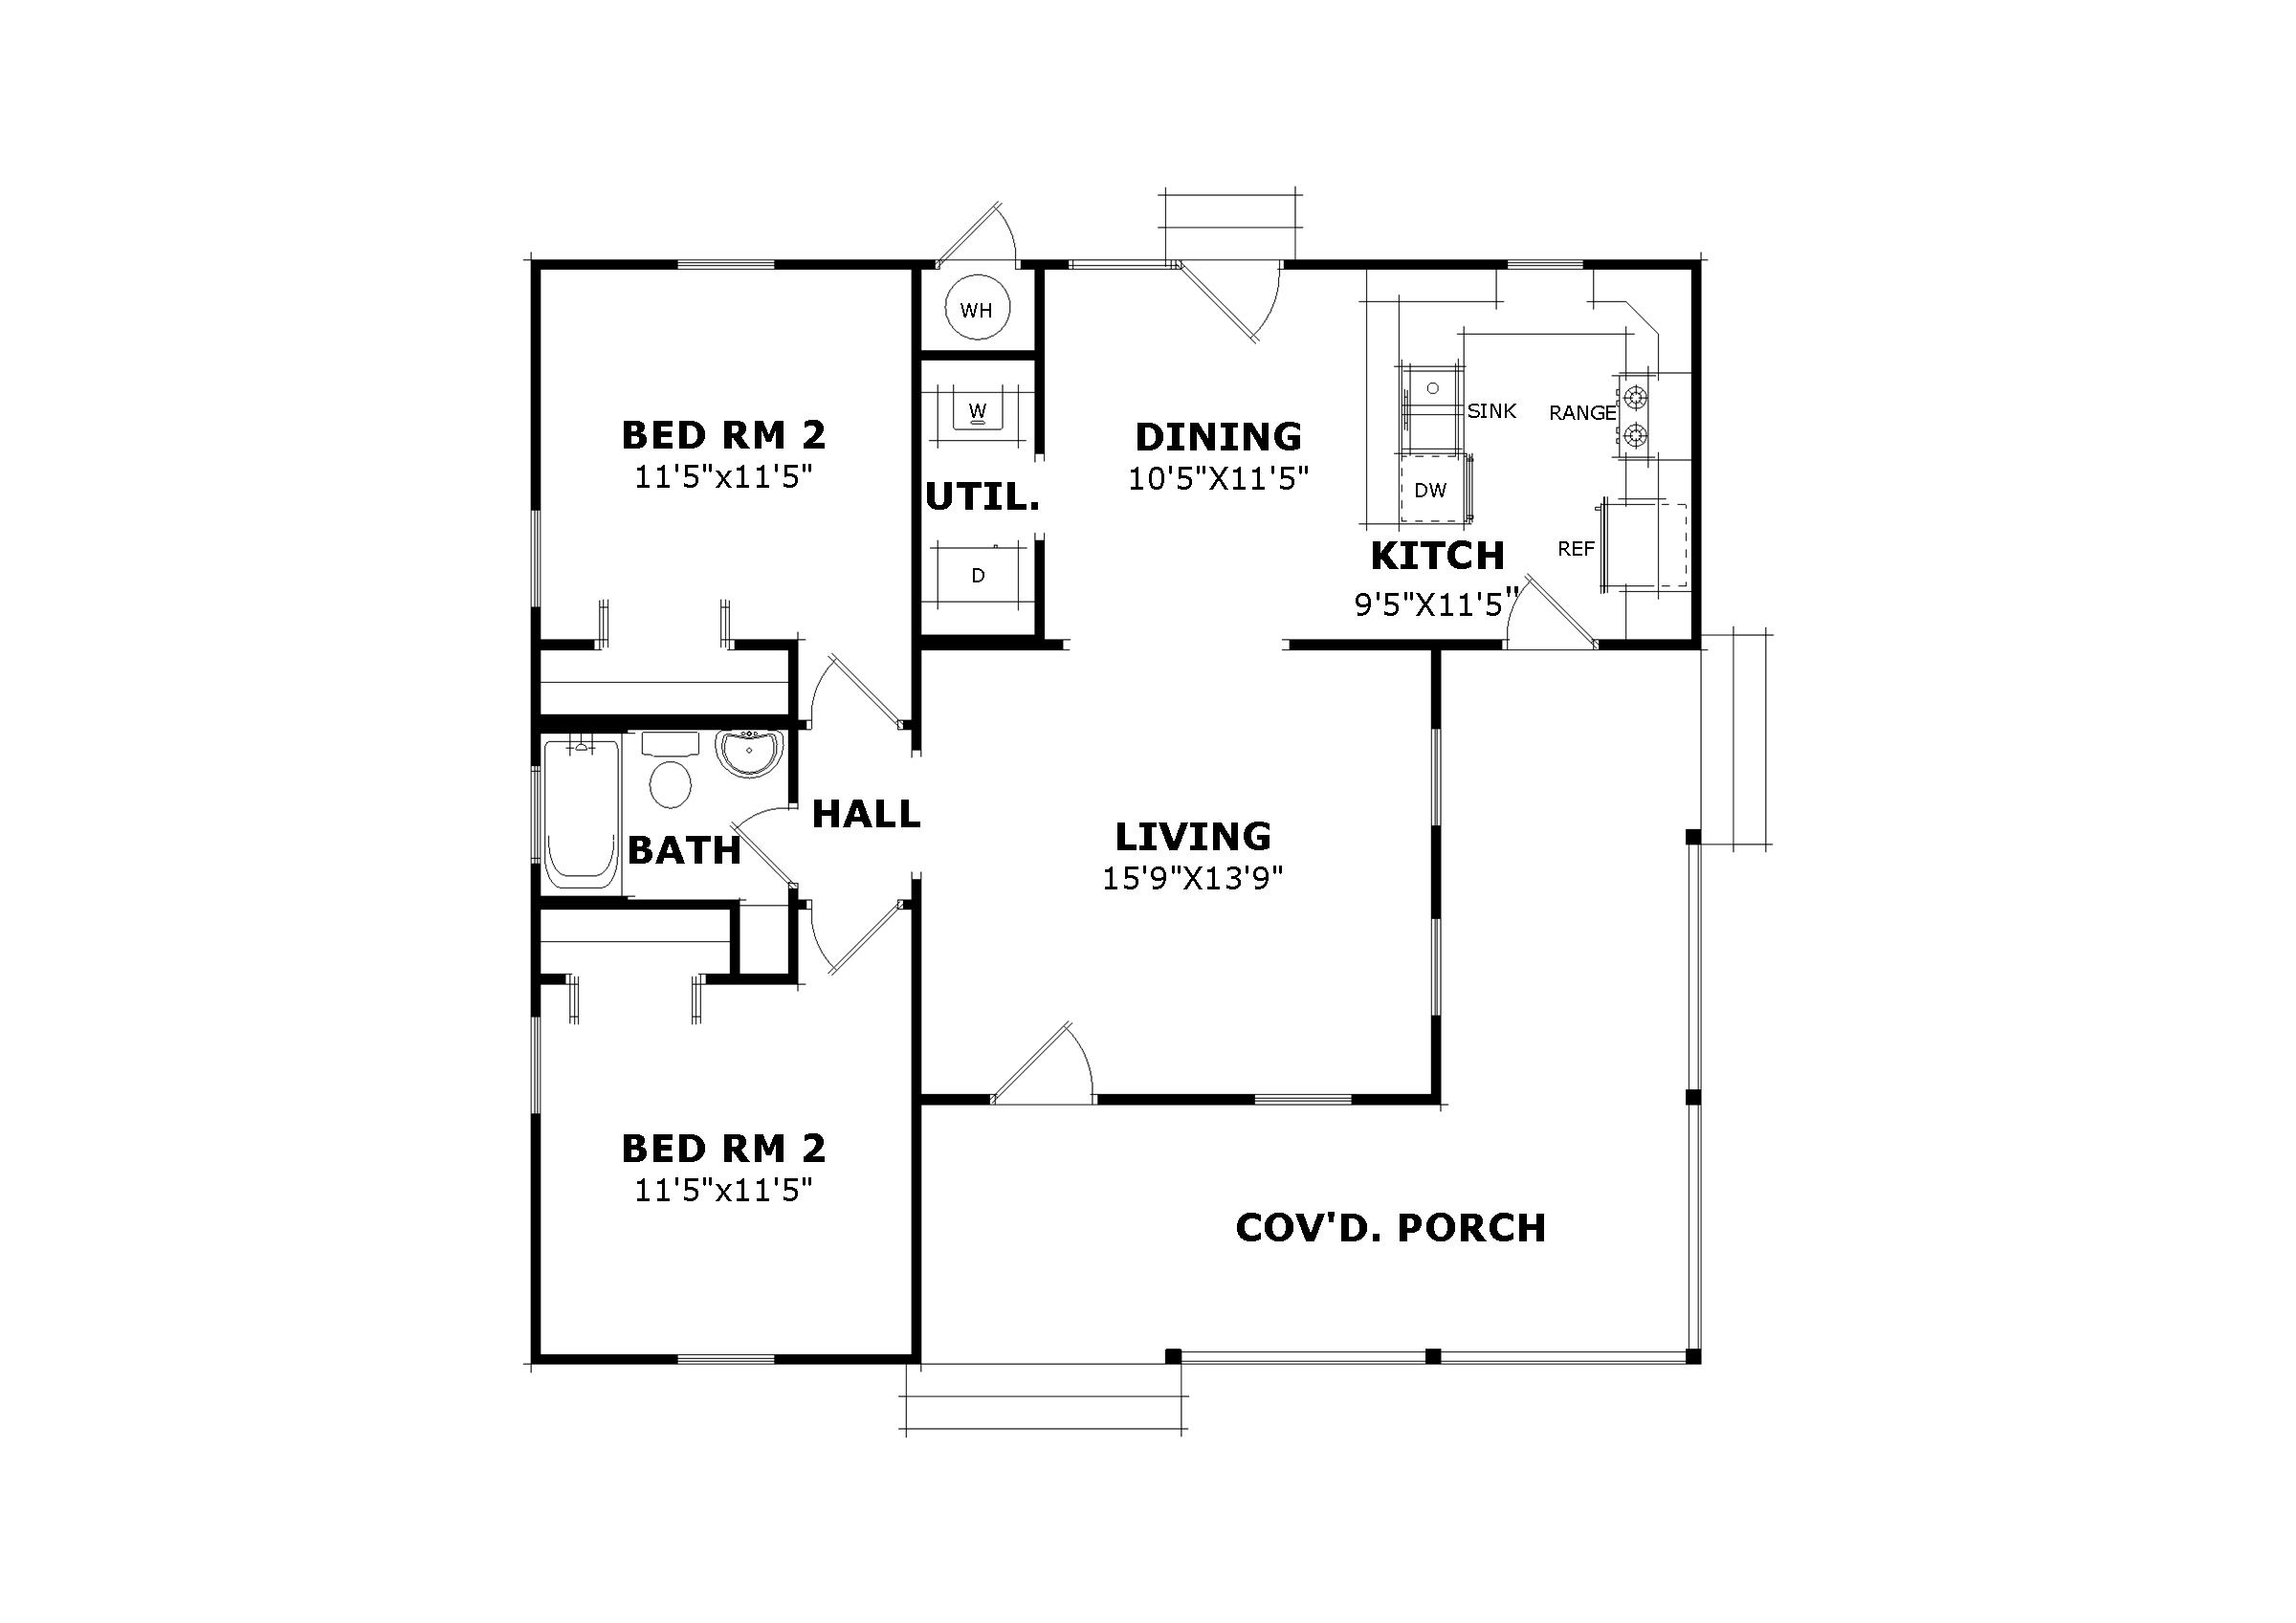 Willow bend 5218 2 bedrooms and 1 5 baths the house for 1 5 story house plans